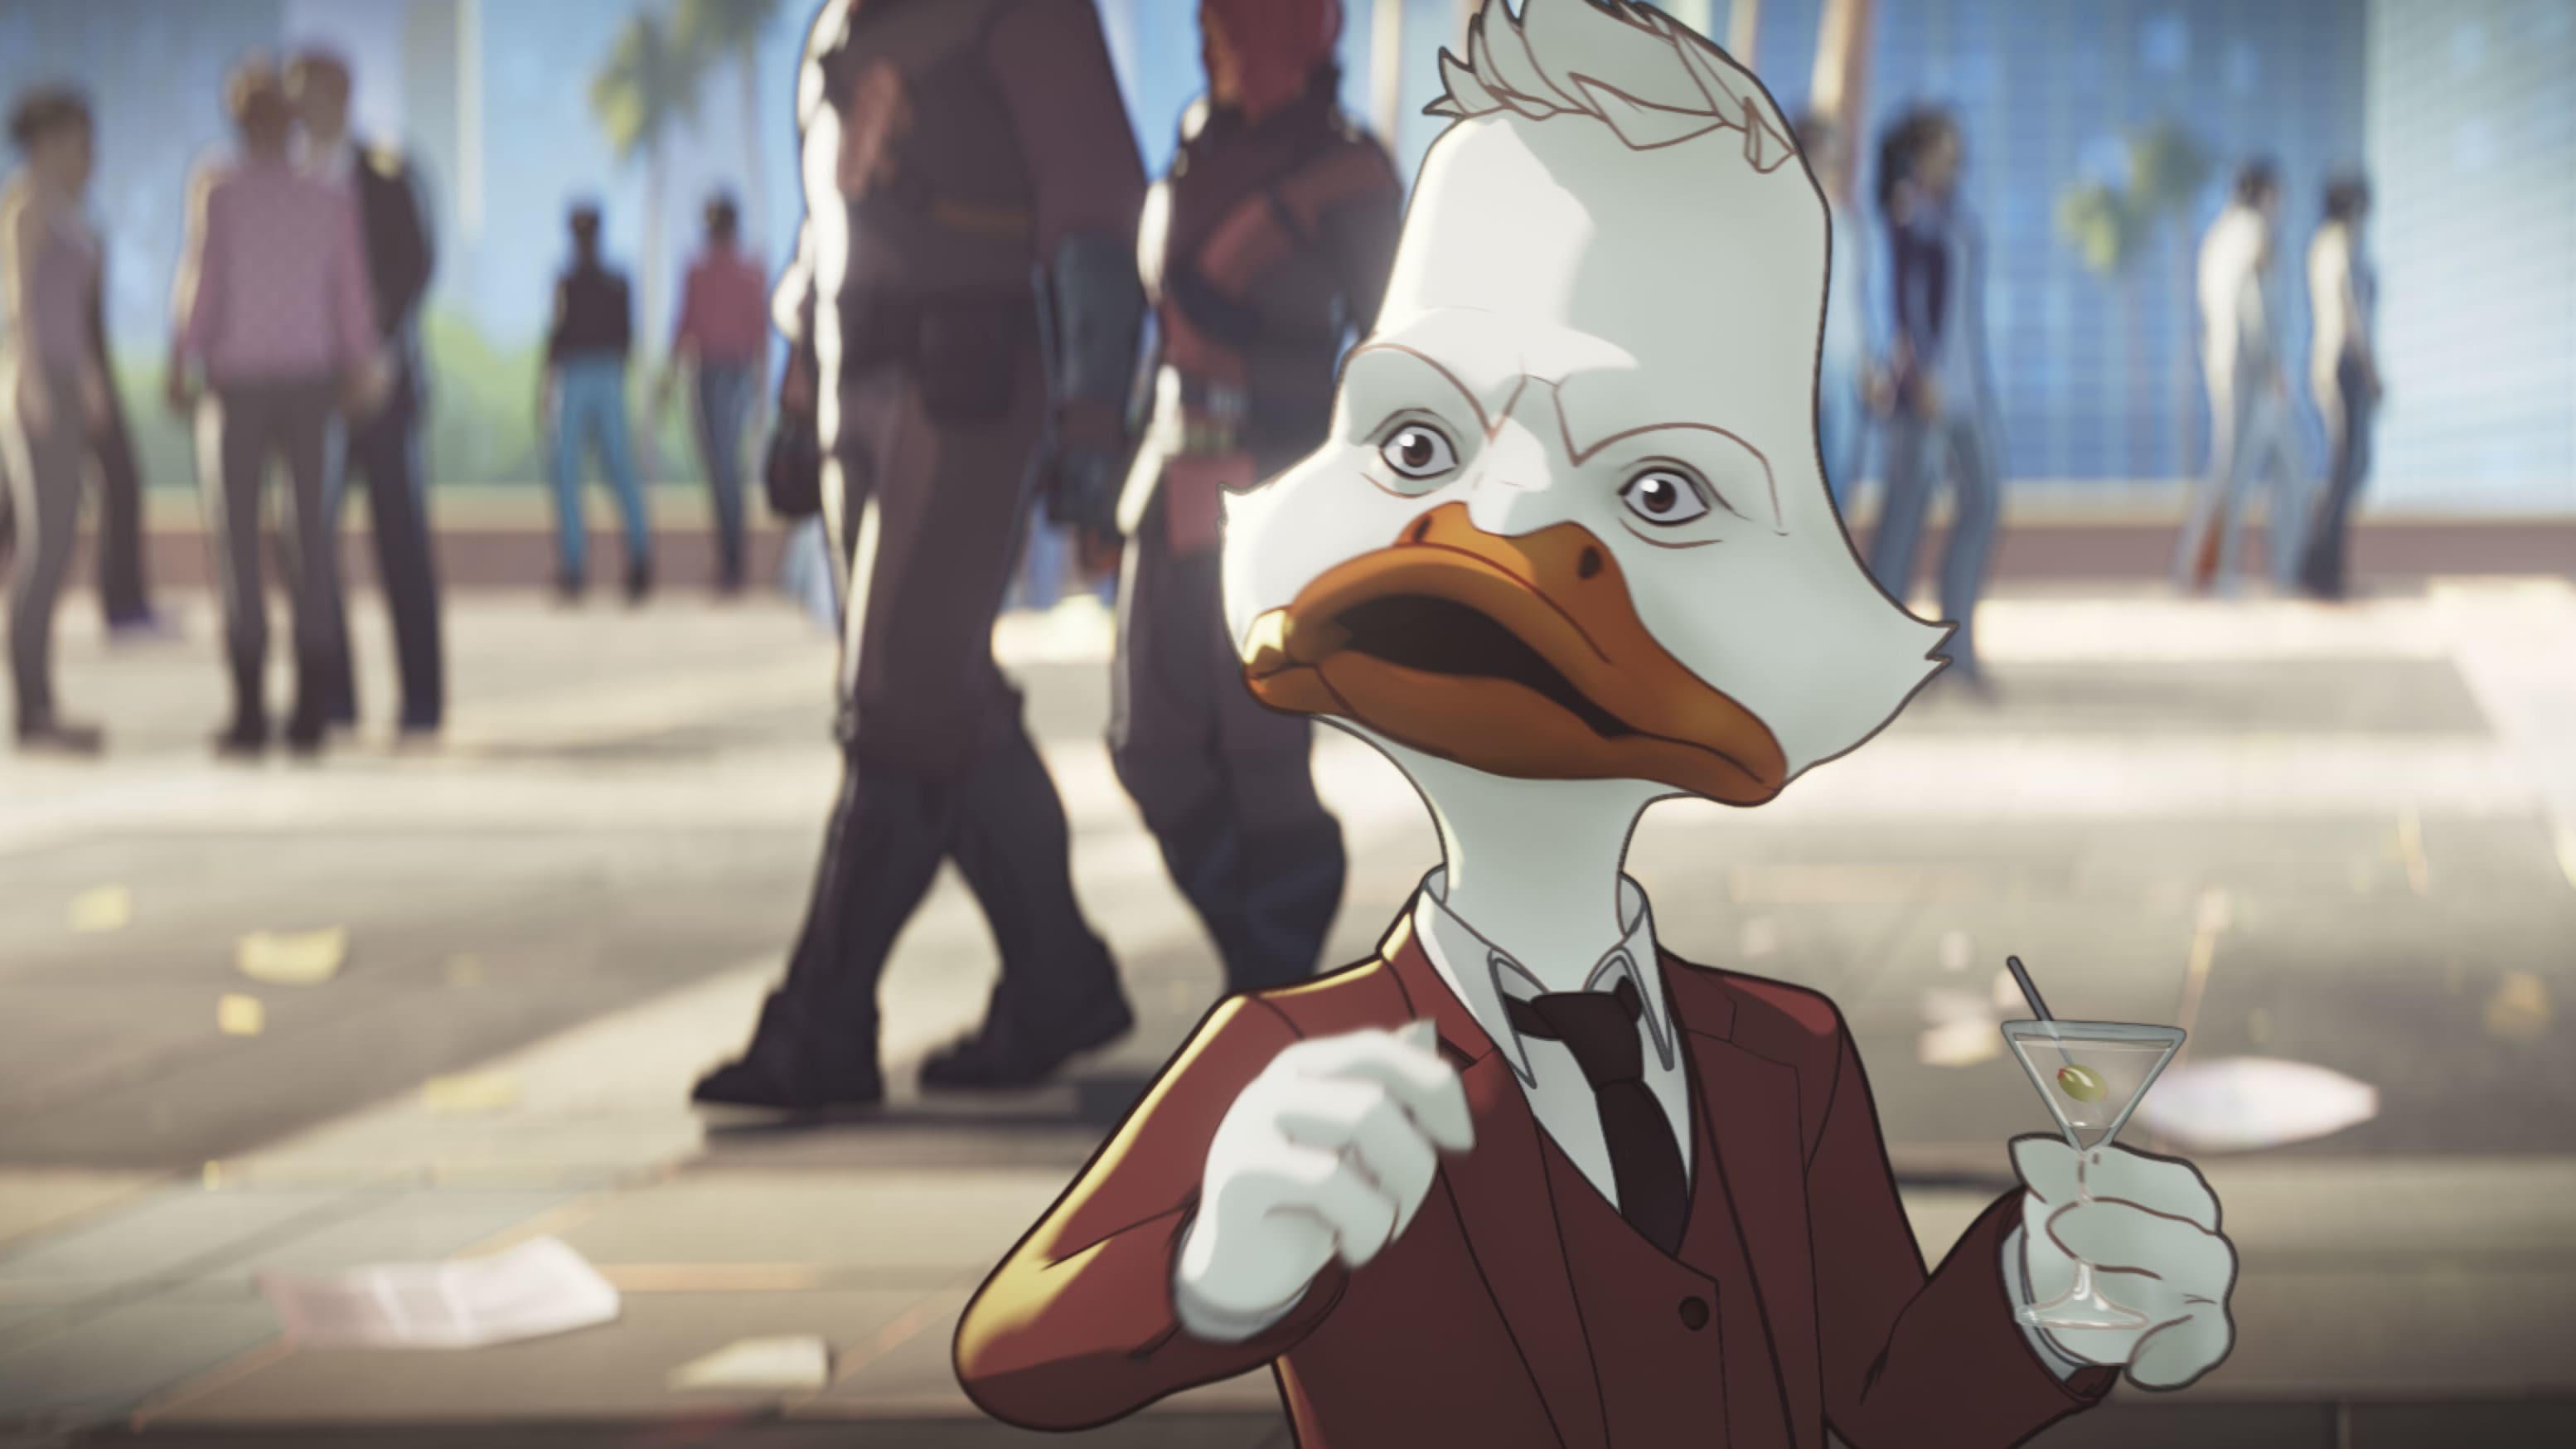 Howard the Duck in Marvel Studios' WHAT IF…? exclusively on Disney+. ©Marvel Studios 2021. All Rights Reserved.